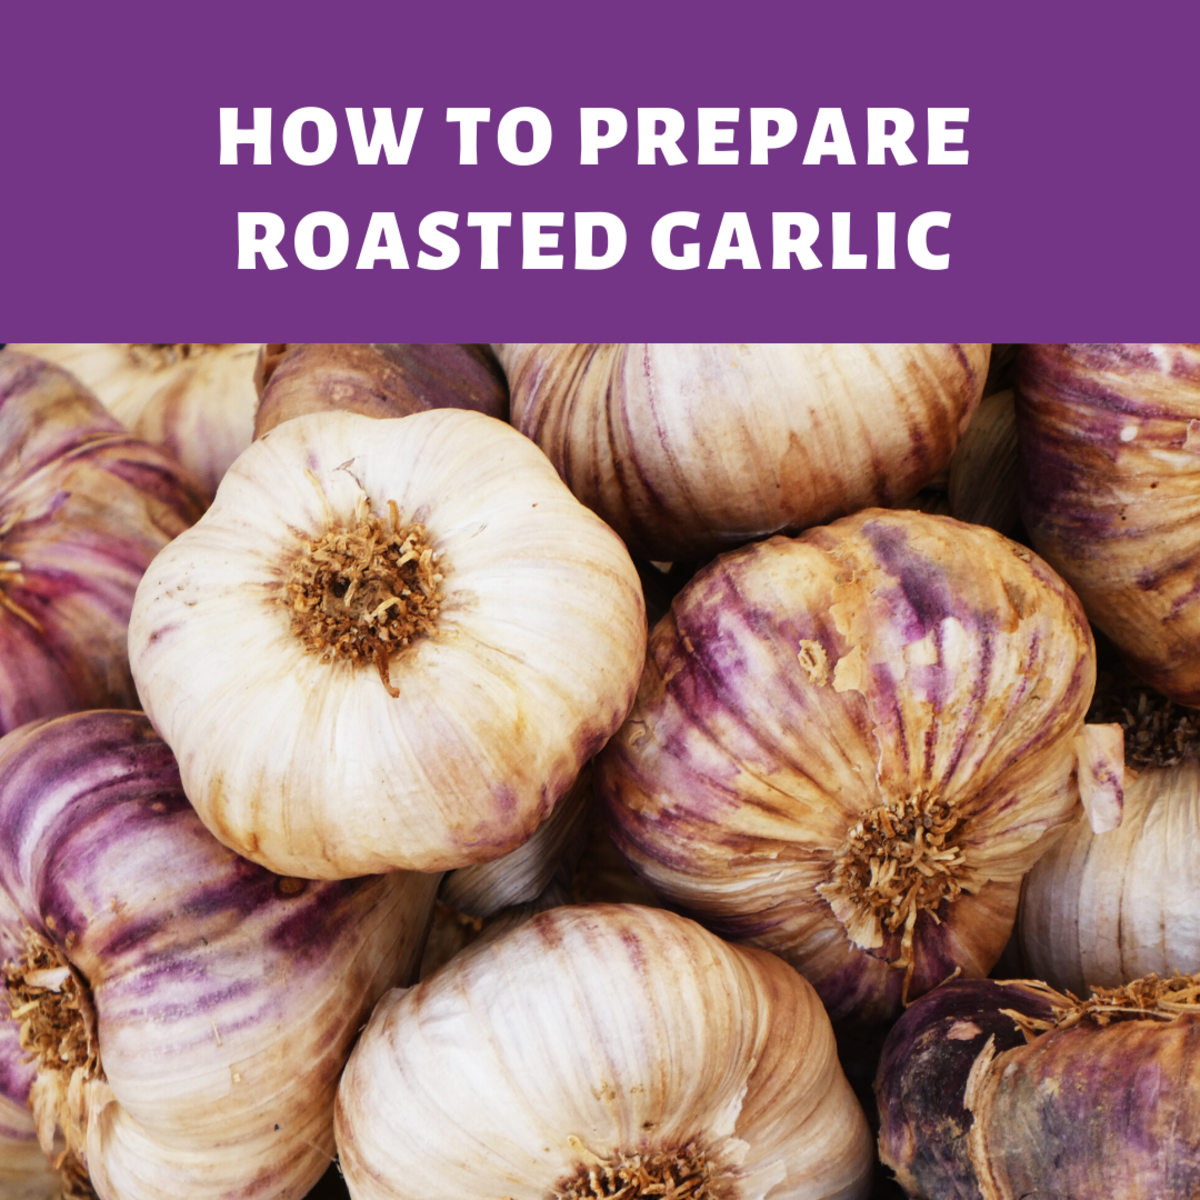 Garlic is healthy and pairs well with so many foods. Read on to learn more about roasting garlic.